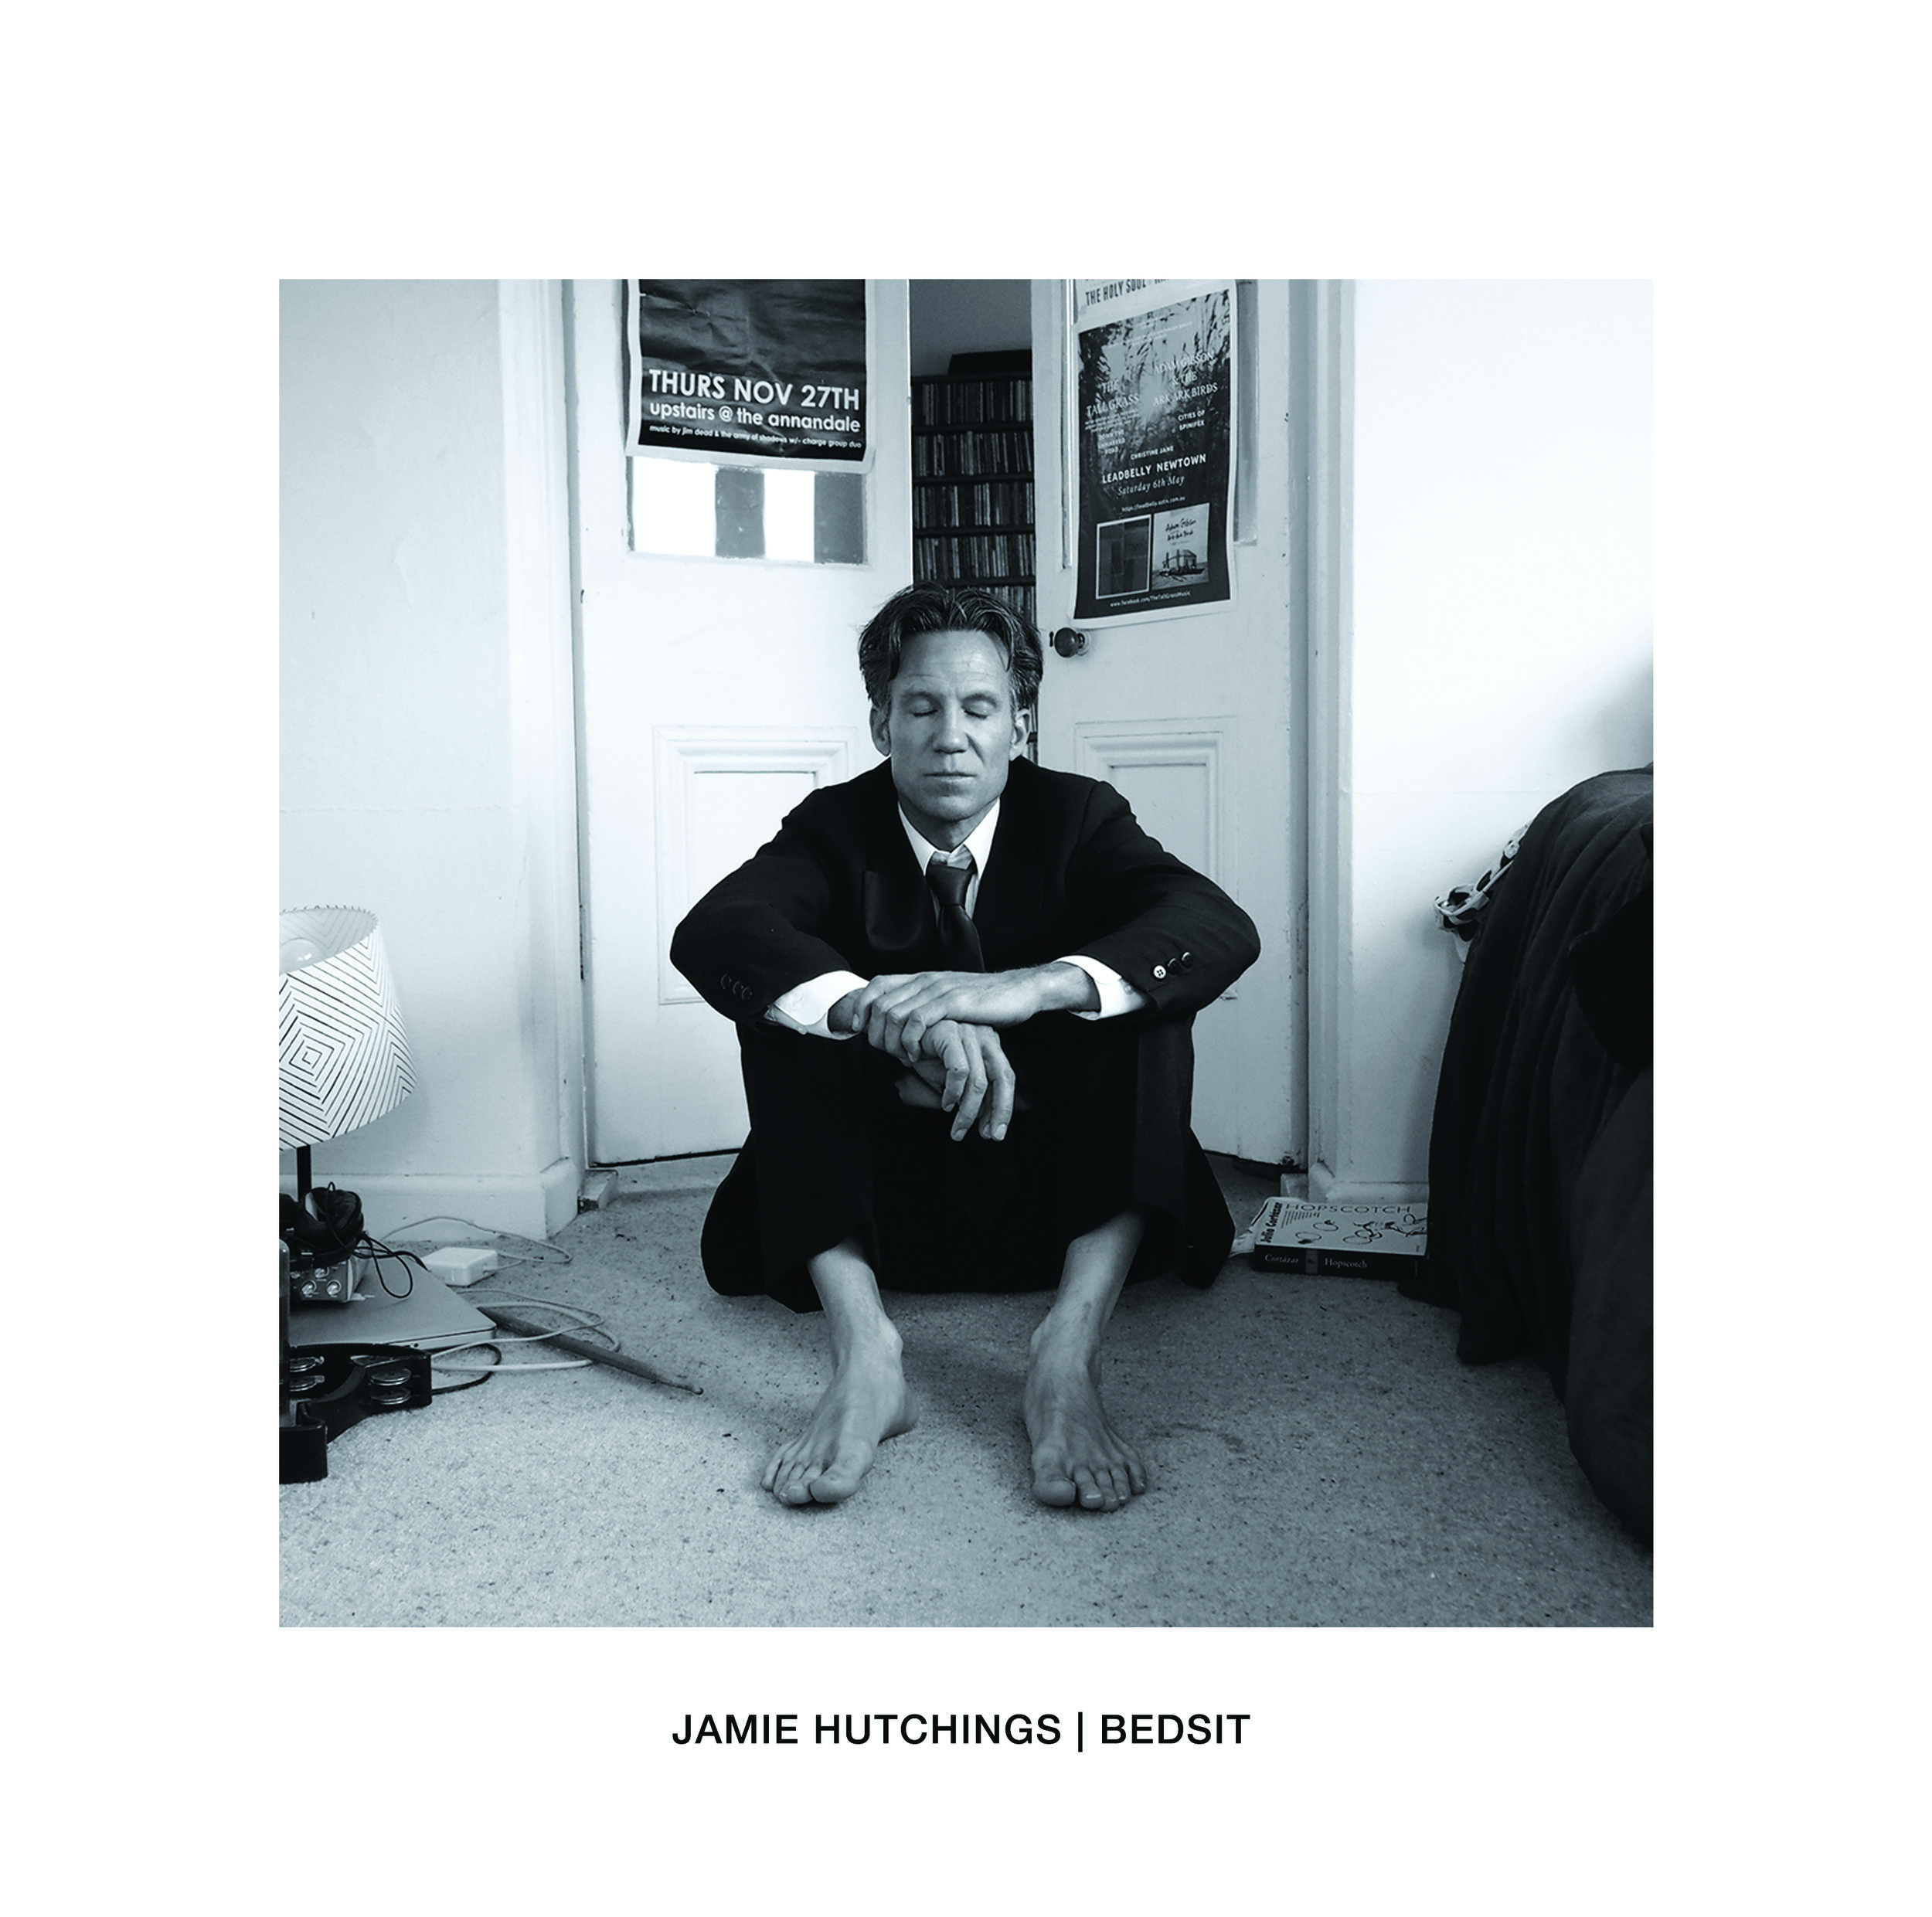 Cover photography and press photos for Australian artist Jamie Hutchings' upcoming album 'Bedsit'. www.jamiehutchings.com #photography